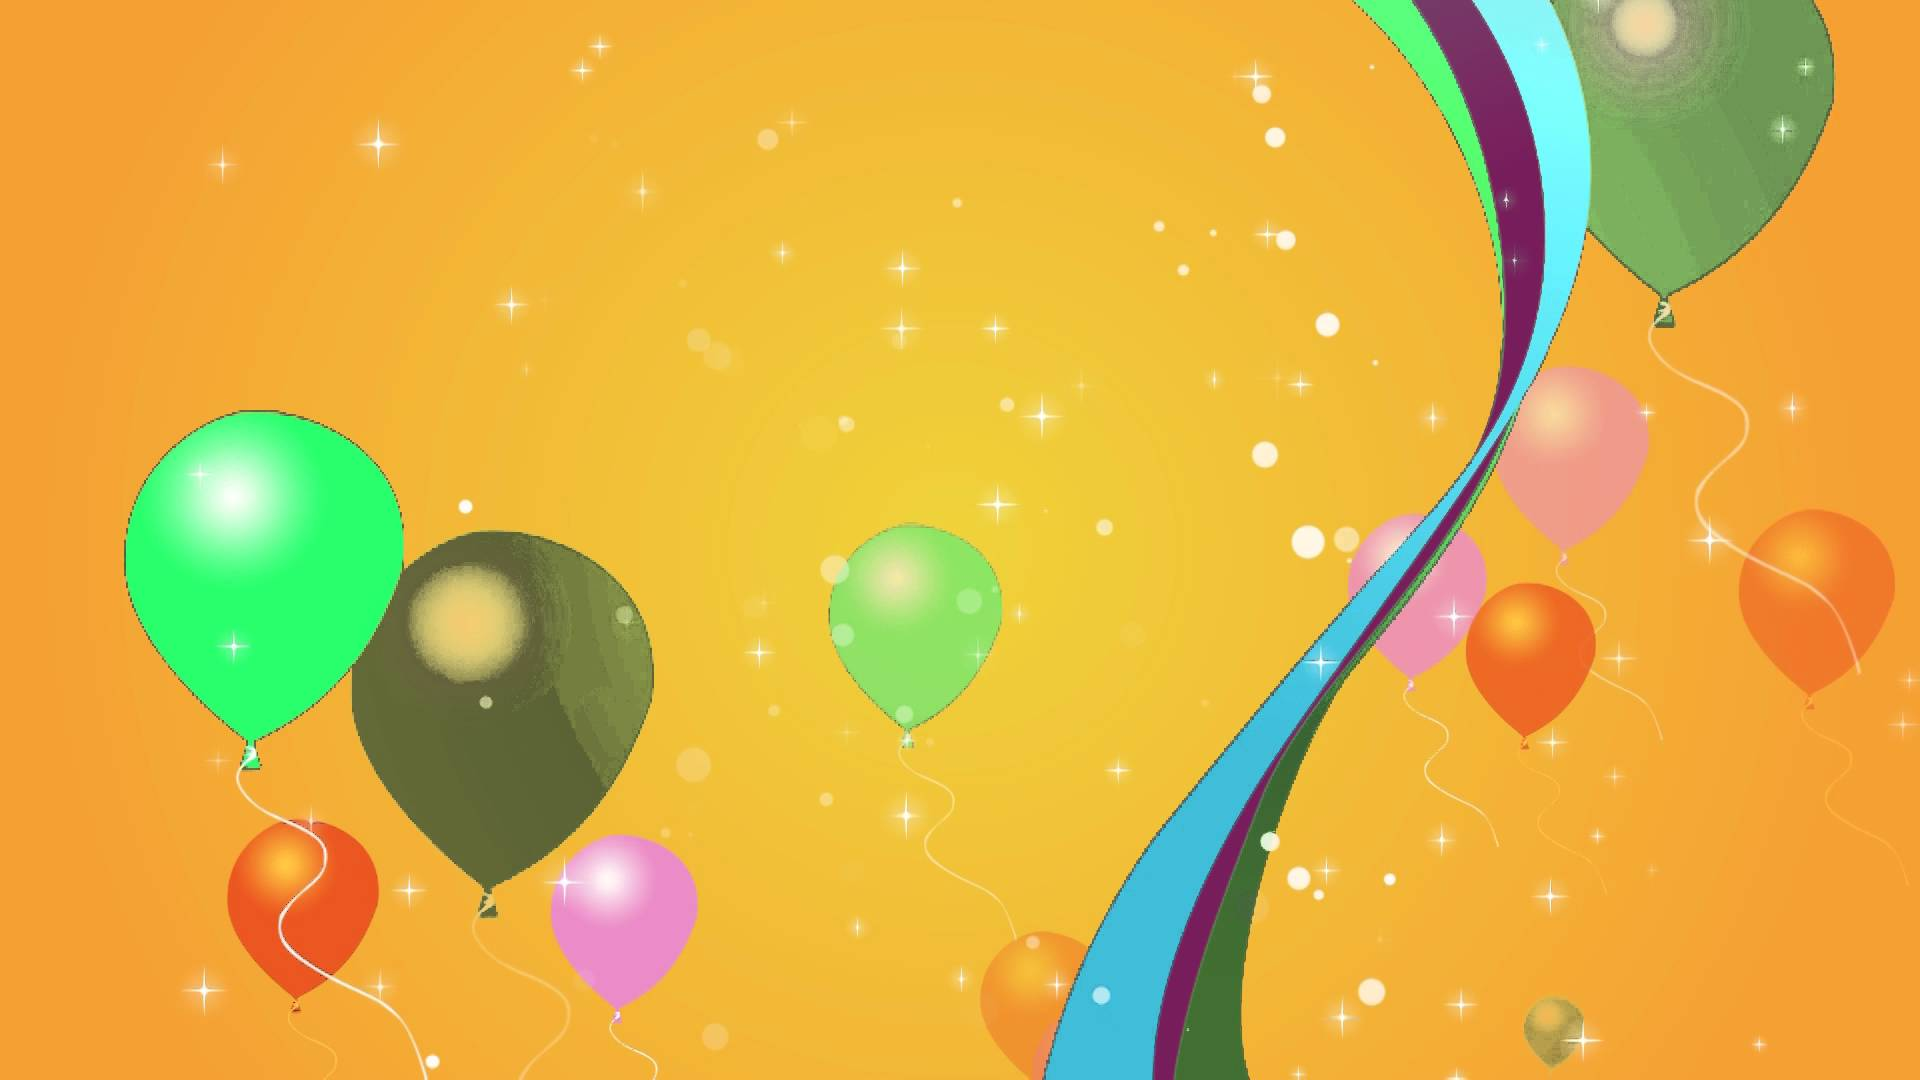 birthday background images hd ; maxresdefault